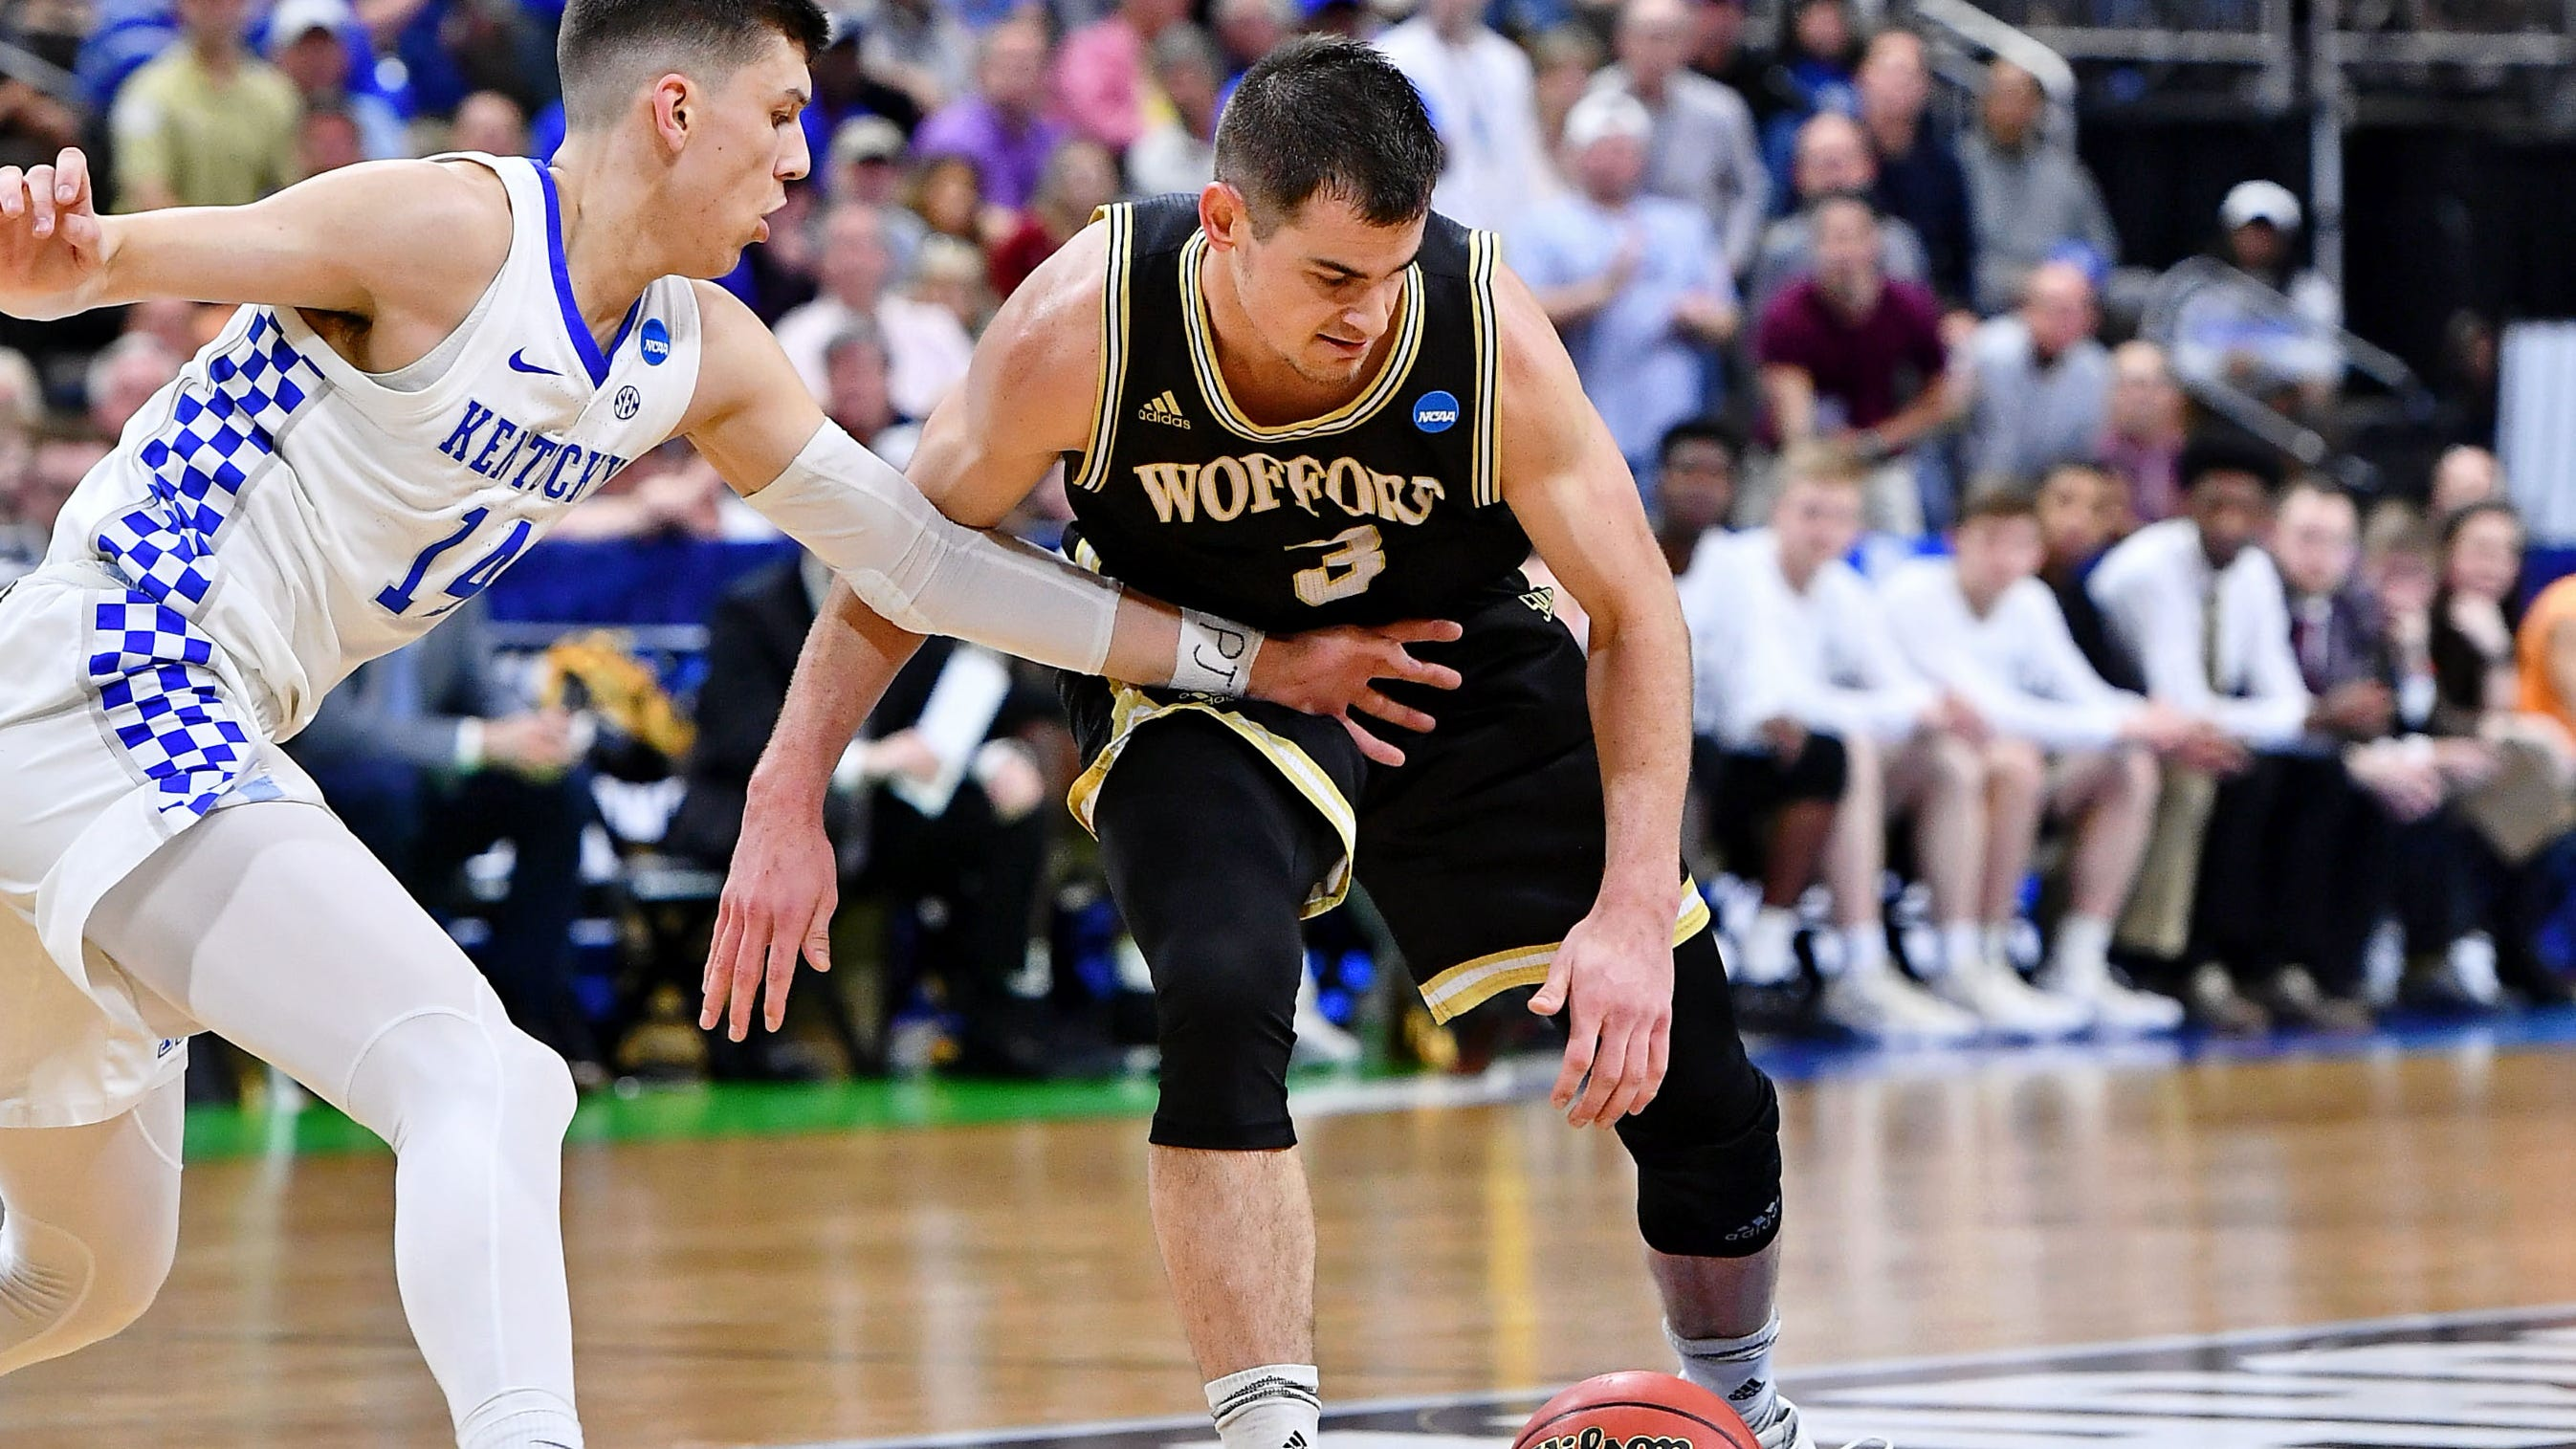 Wofford guard Fletcher Magee tries to dribble past Kentucky guard Tyler Herro during the second round of the 2019 NCAA tournament.